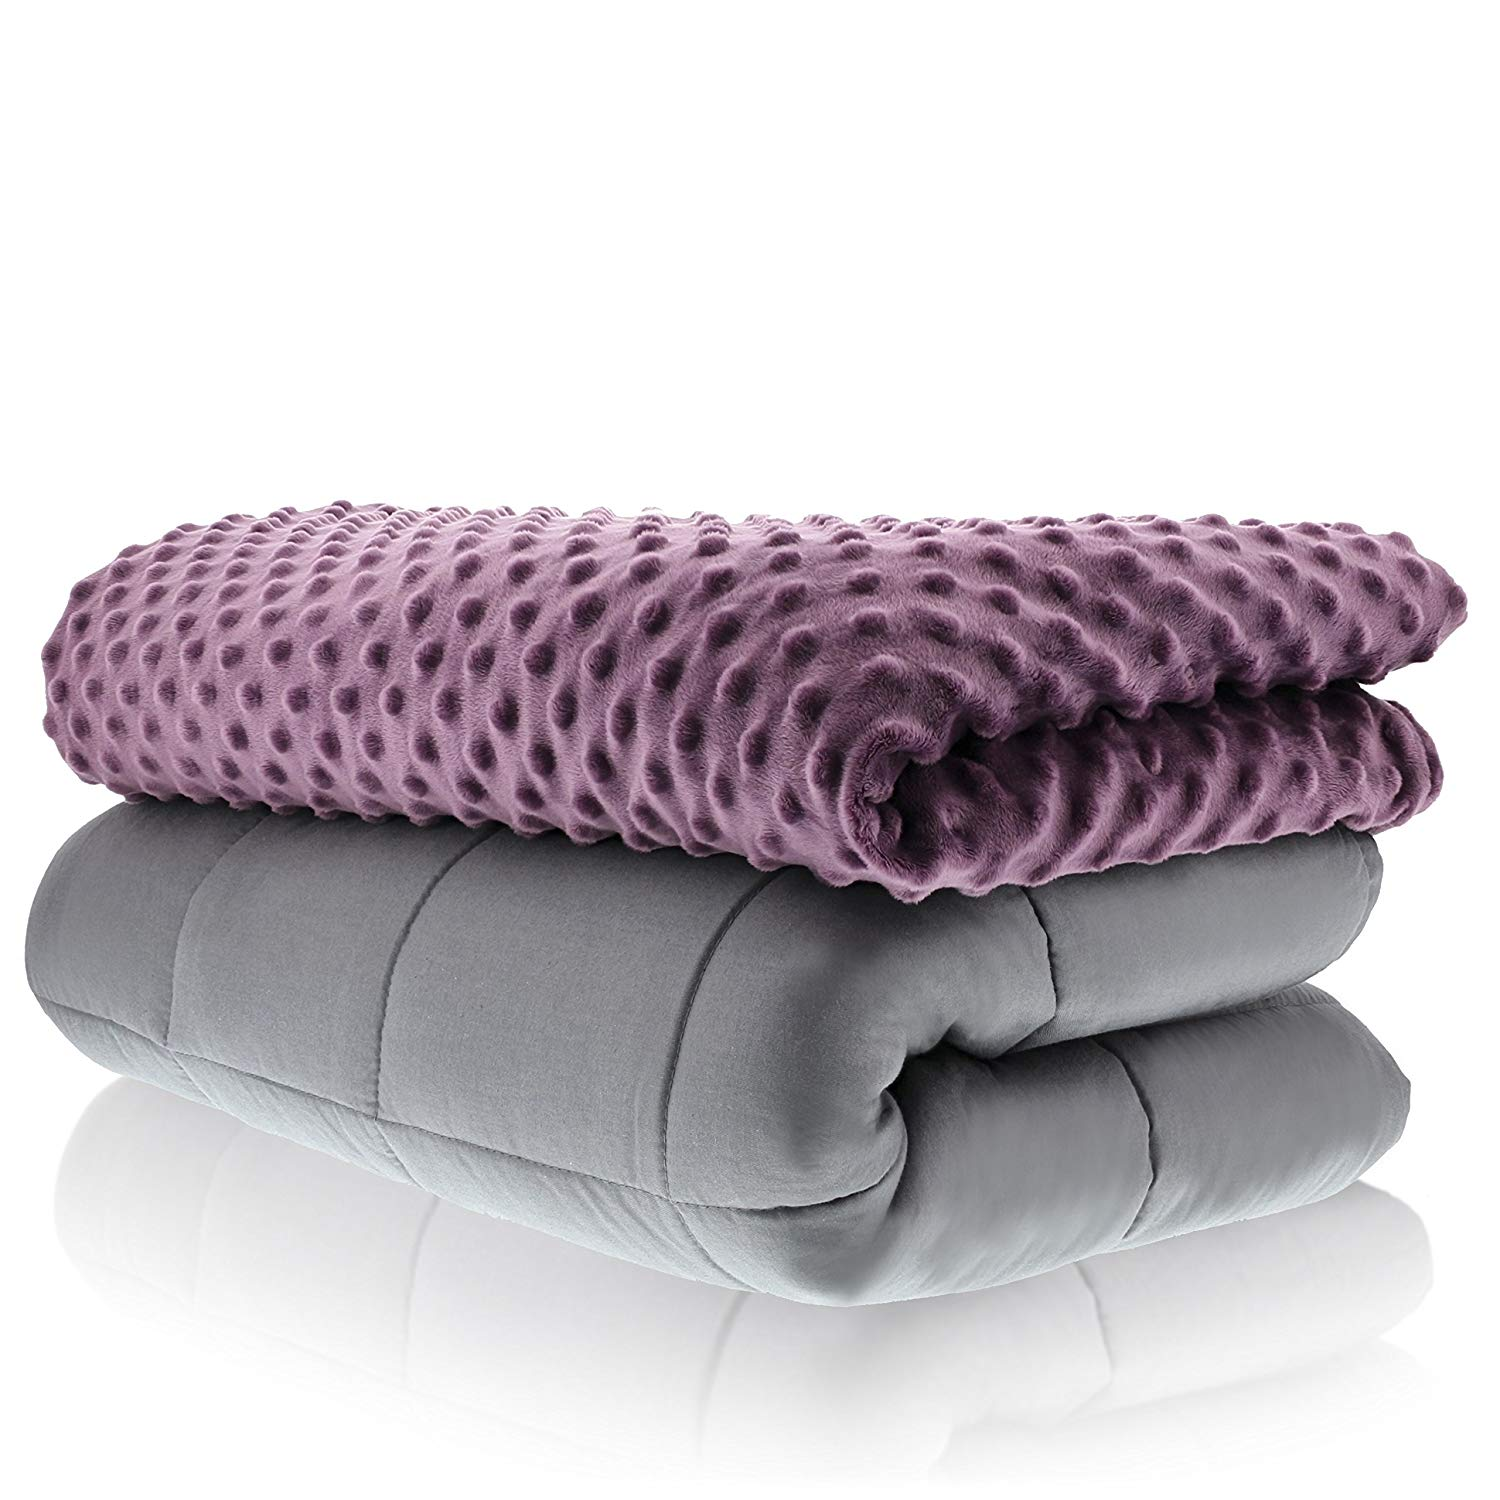 637e173b9c0ab The Best Weighted Blanket 2019 – No Sleepless Nights! - SnoreMagazine